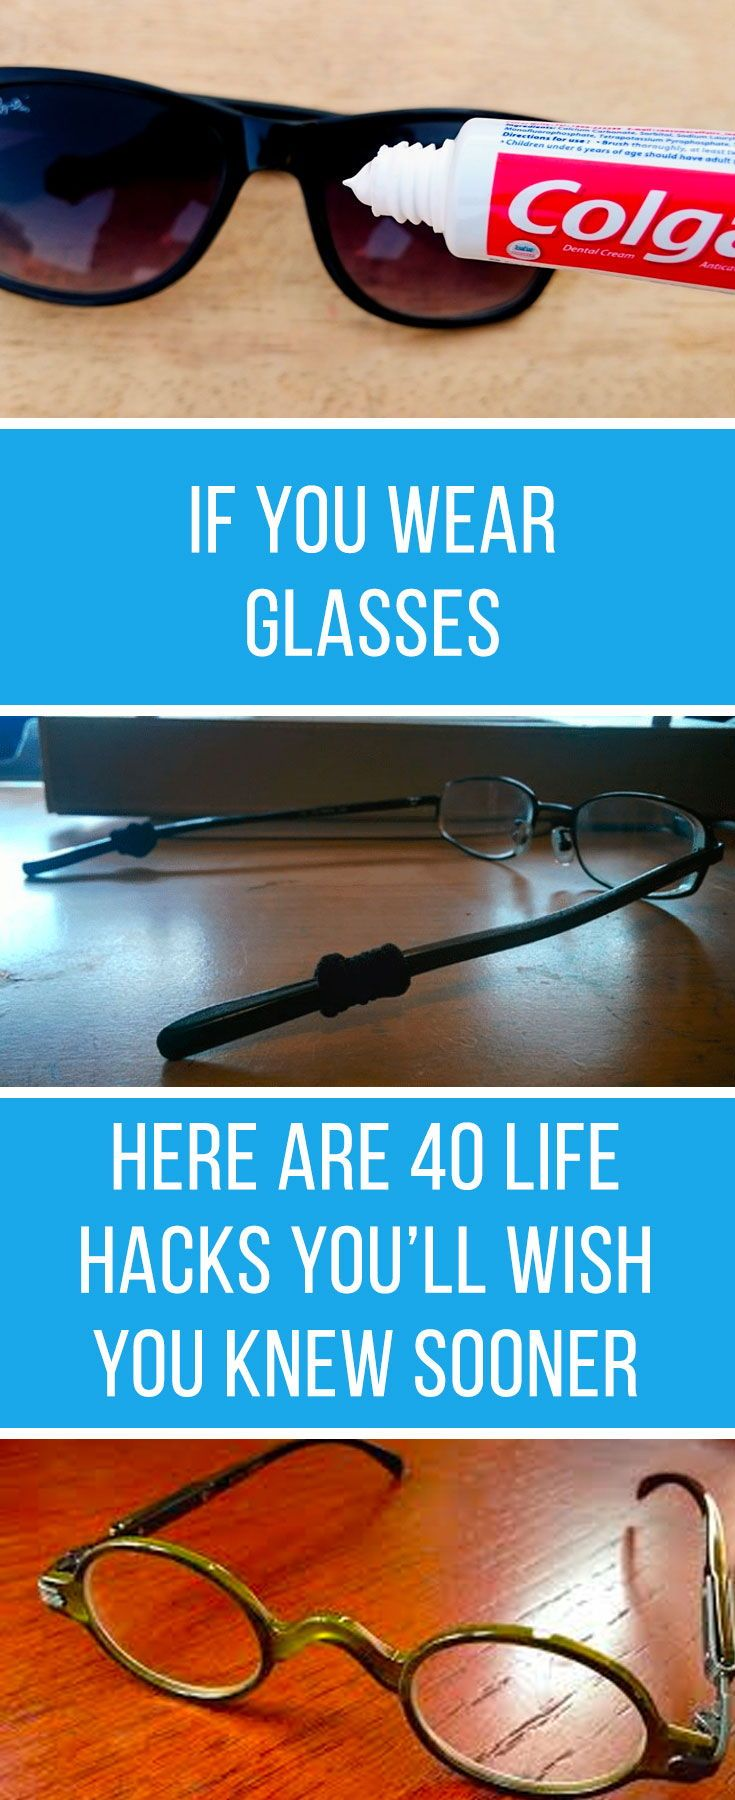 If You Wear Glasses, Here Are 40 Little-Known Life Hacks That You'll Wish You Knew Sooner